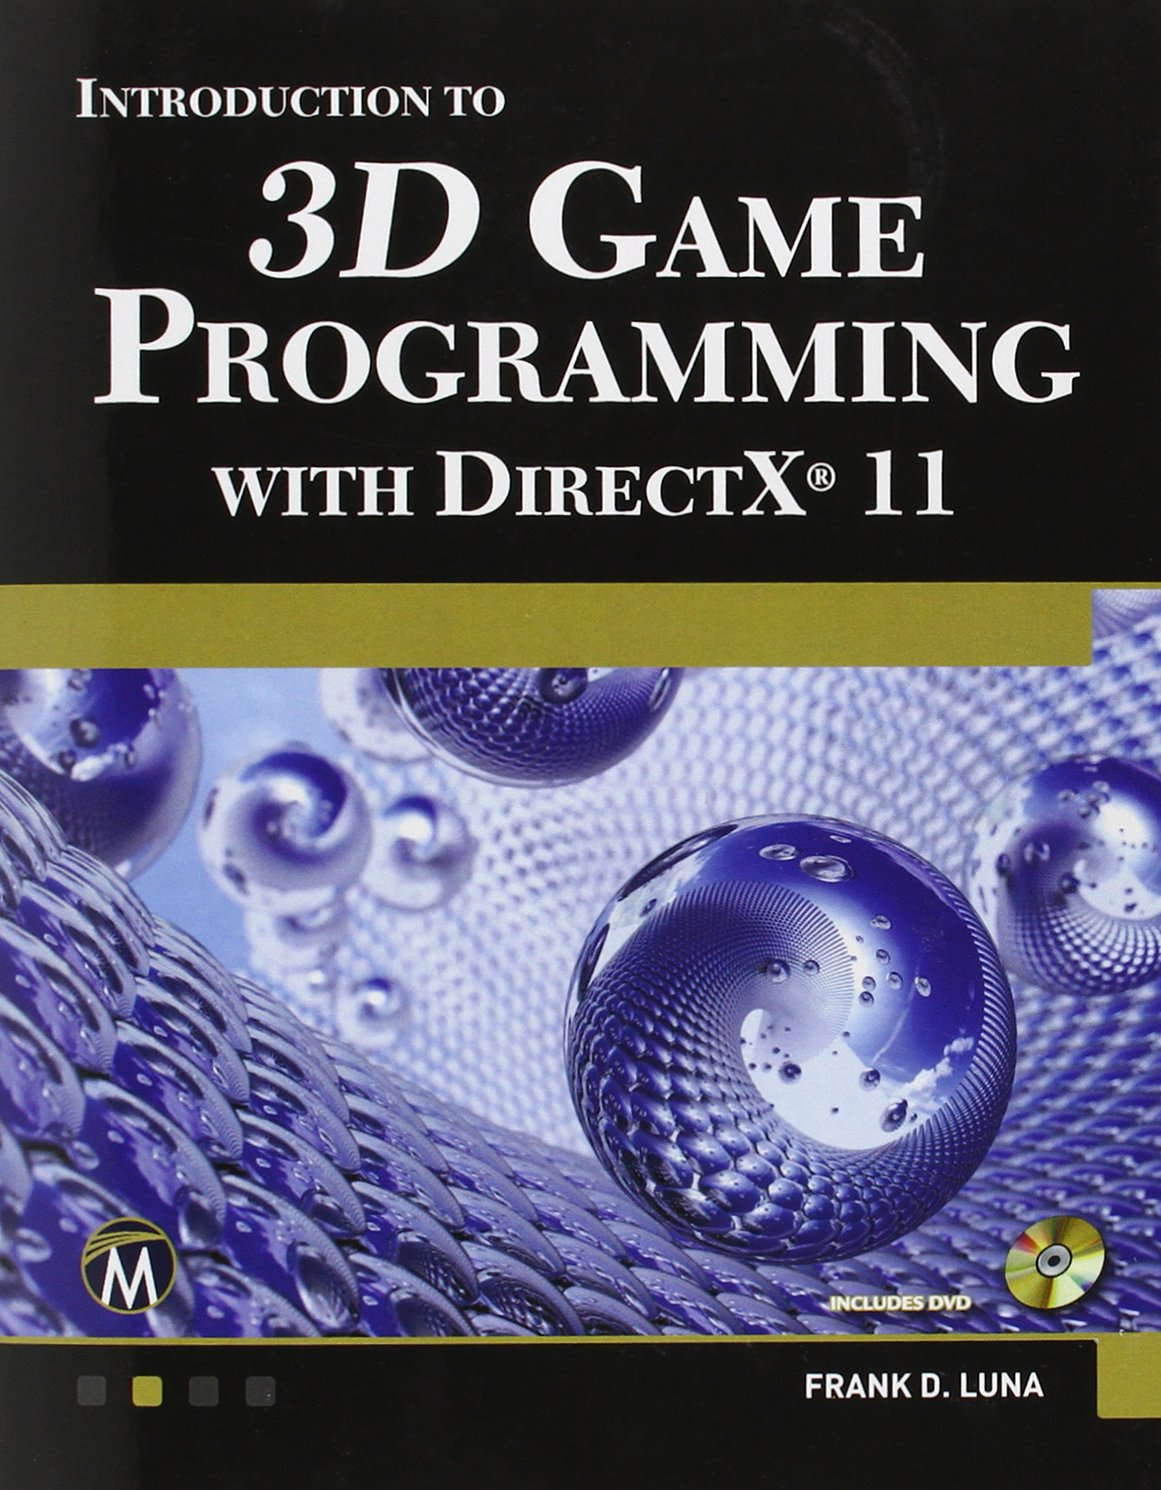 couverture du livre Introduction to 3D Game Programming with DirectX 11